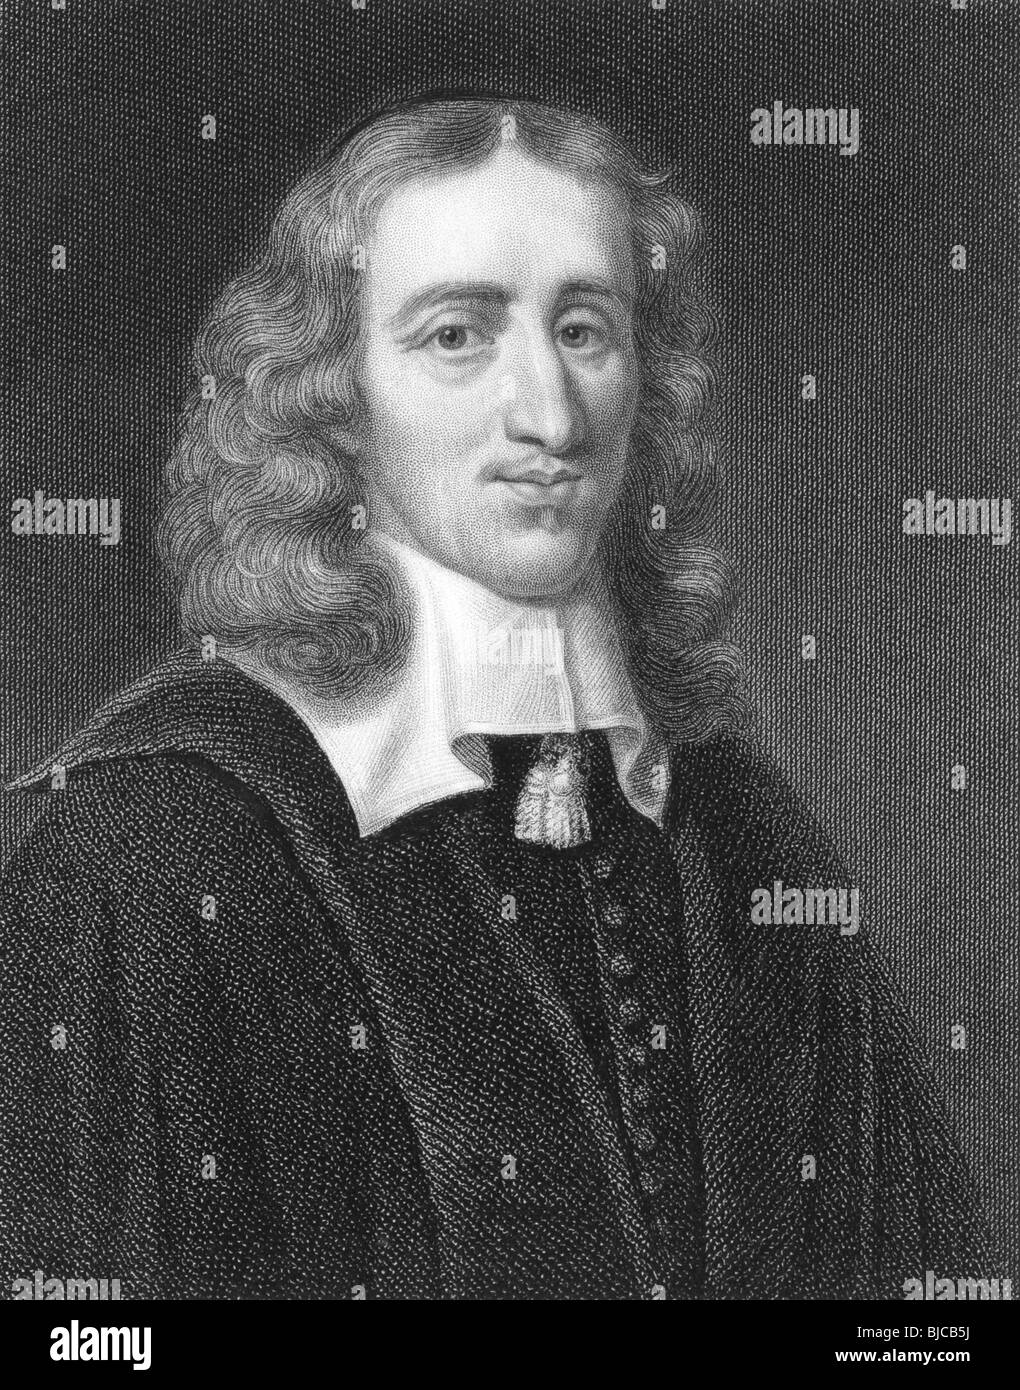 Johan de Witt (1625-1672) on engraving from the 1800s.Key figure in Dutch politics. - Stock Image